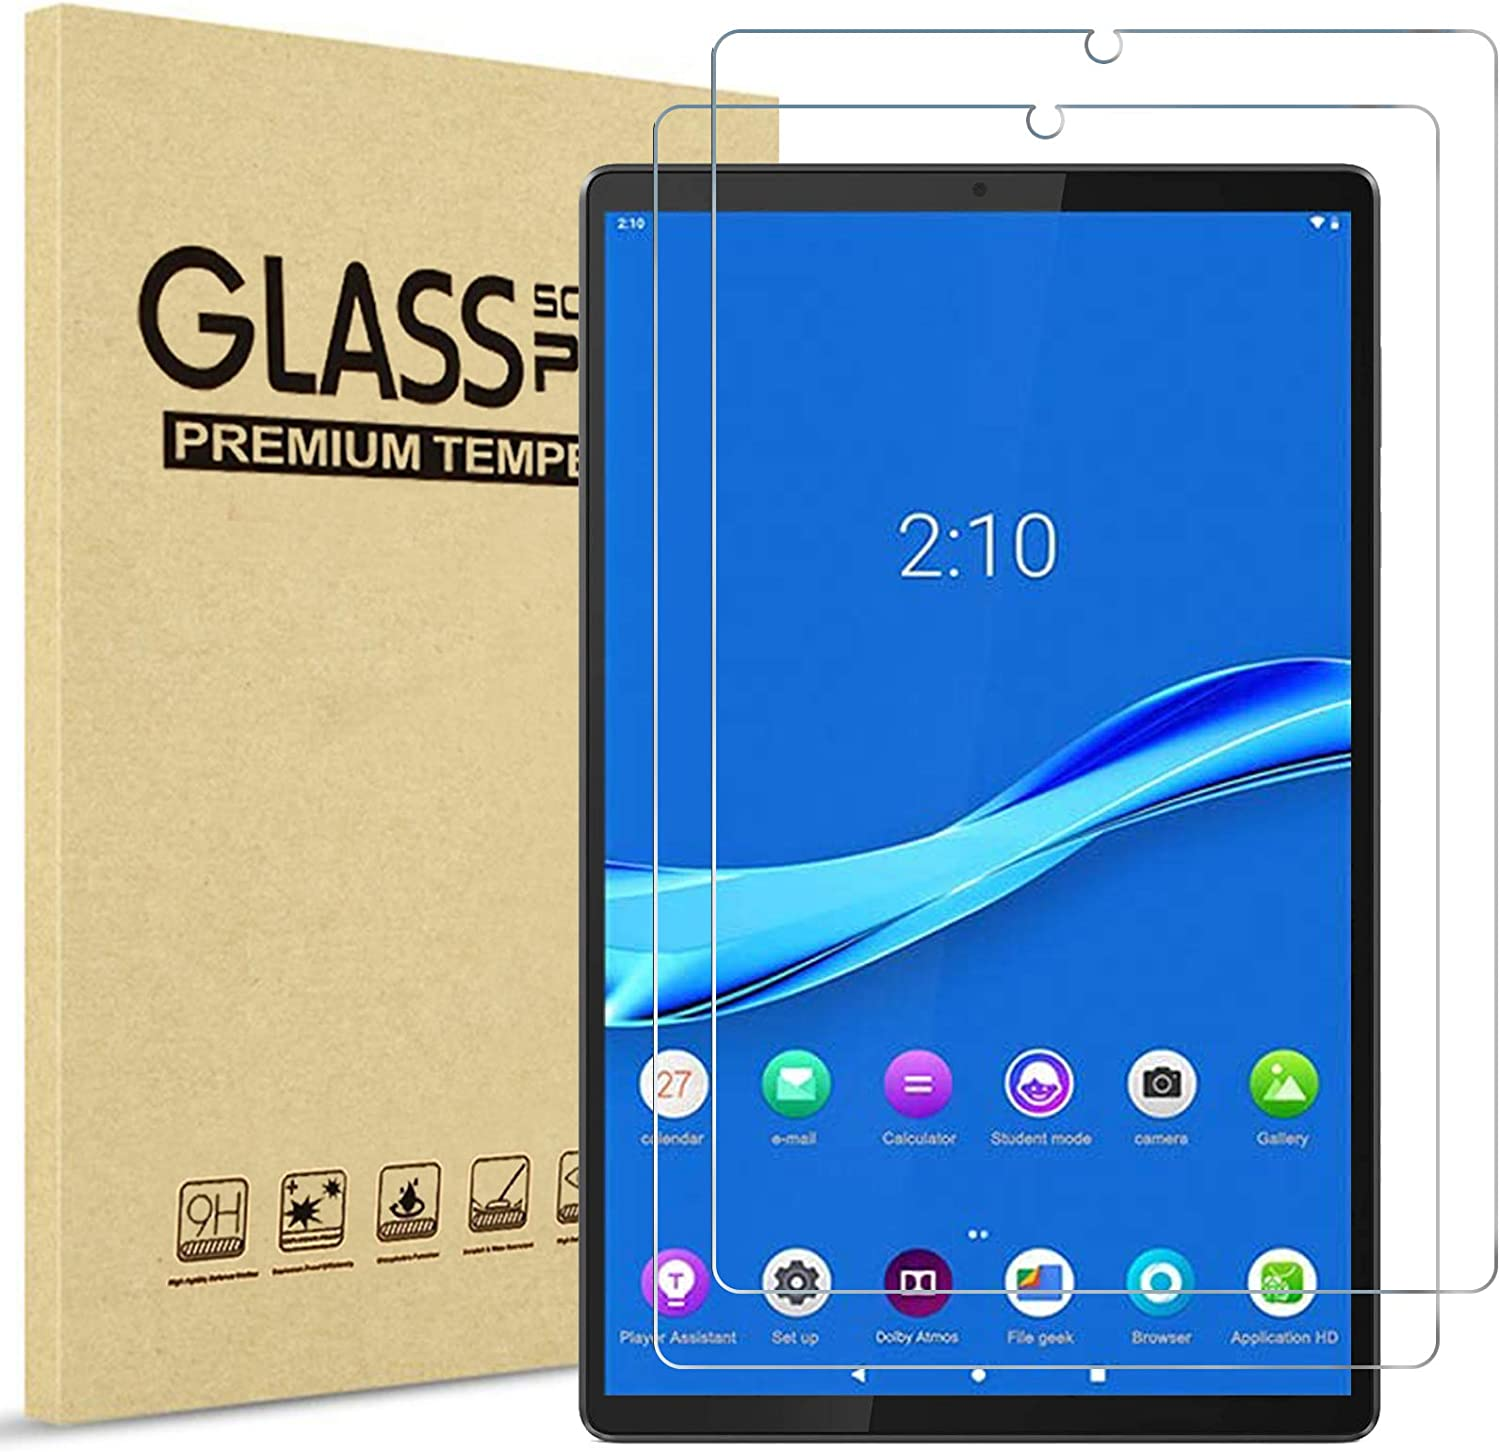 [2 Pack] ProCase Lenovo Tab M10 FHD Plus 10.3 Inch Screen Protector TB-X606F TB-X606X, Tempered Glass Screen Film Guard for Lenovo Tab M10 Plus (2nd Gen) 2020 Release